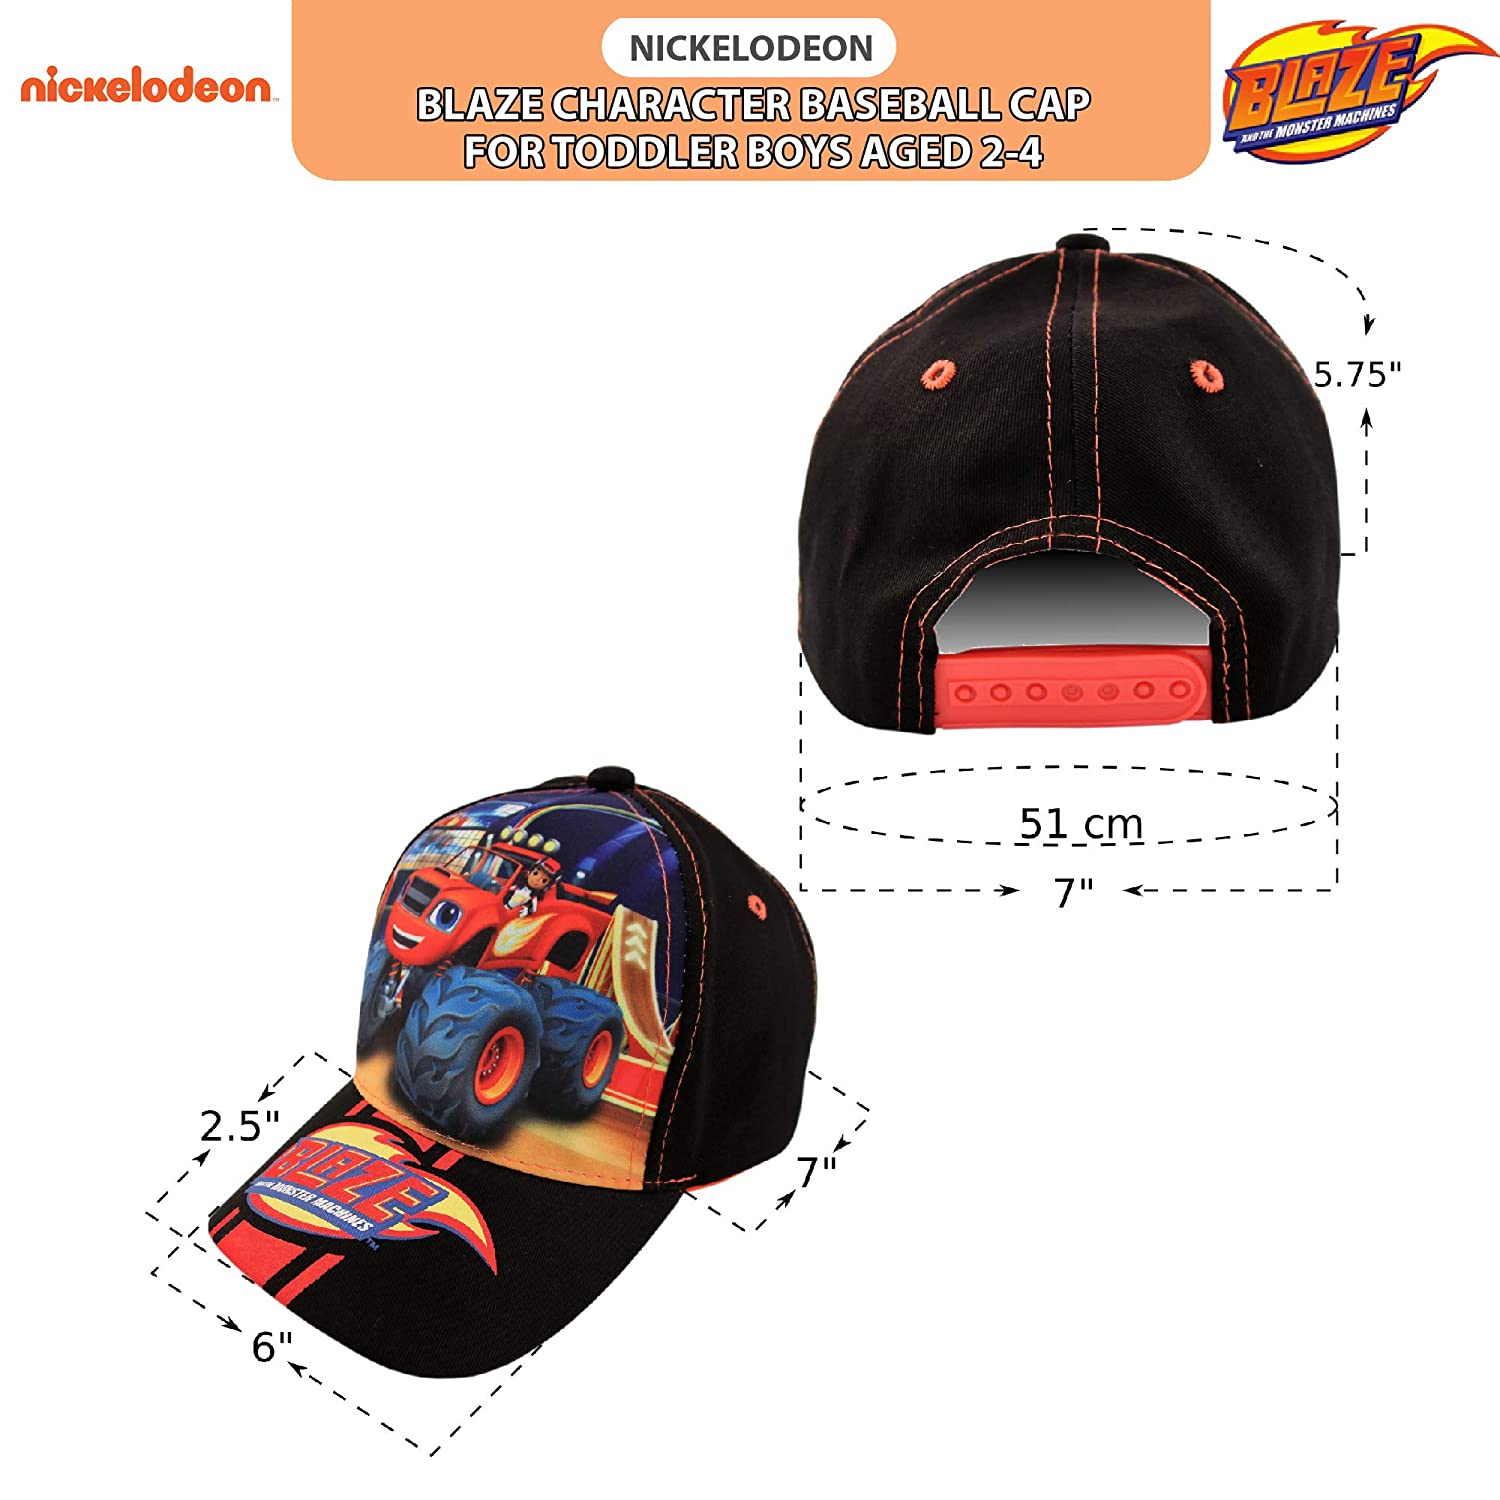 online store b379a 93275 Amazon.com  Nickelodeon Toddler Boys Blaze and The Monster Machines Cotton  Baseball Cap, Age 2-4 Black, Red  Clothing